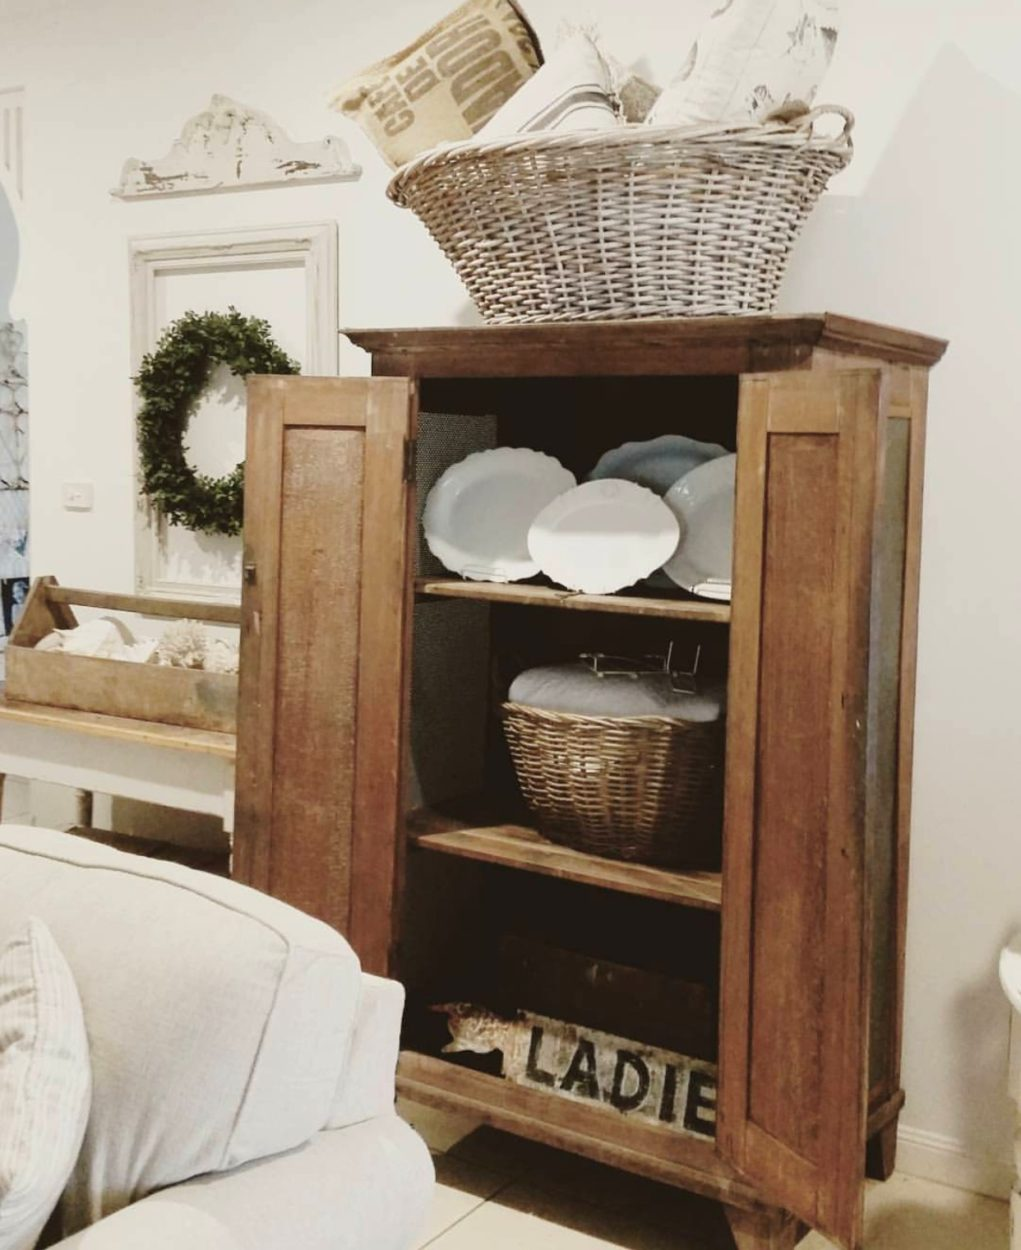 I fyou love farmhouse style or fixer upper, you will love this salvaged farmhouse home tour with vintage bliss. She shows off flea market, garage sale, thrifted finds in the most beatufiul way. She is a talented home decorator. Come and be inspired at this home tour.